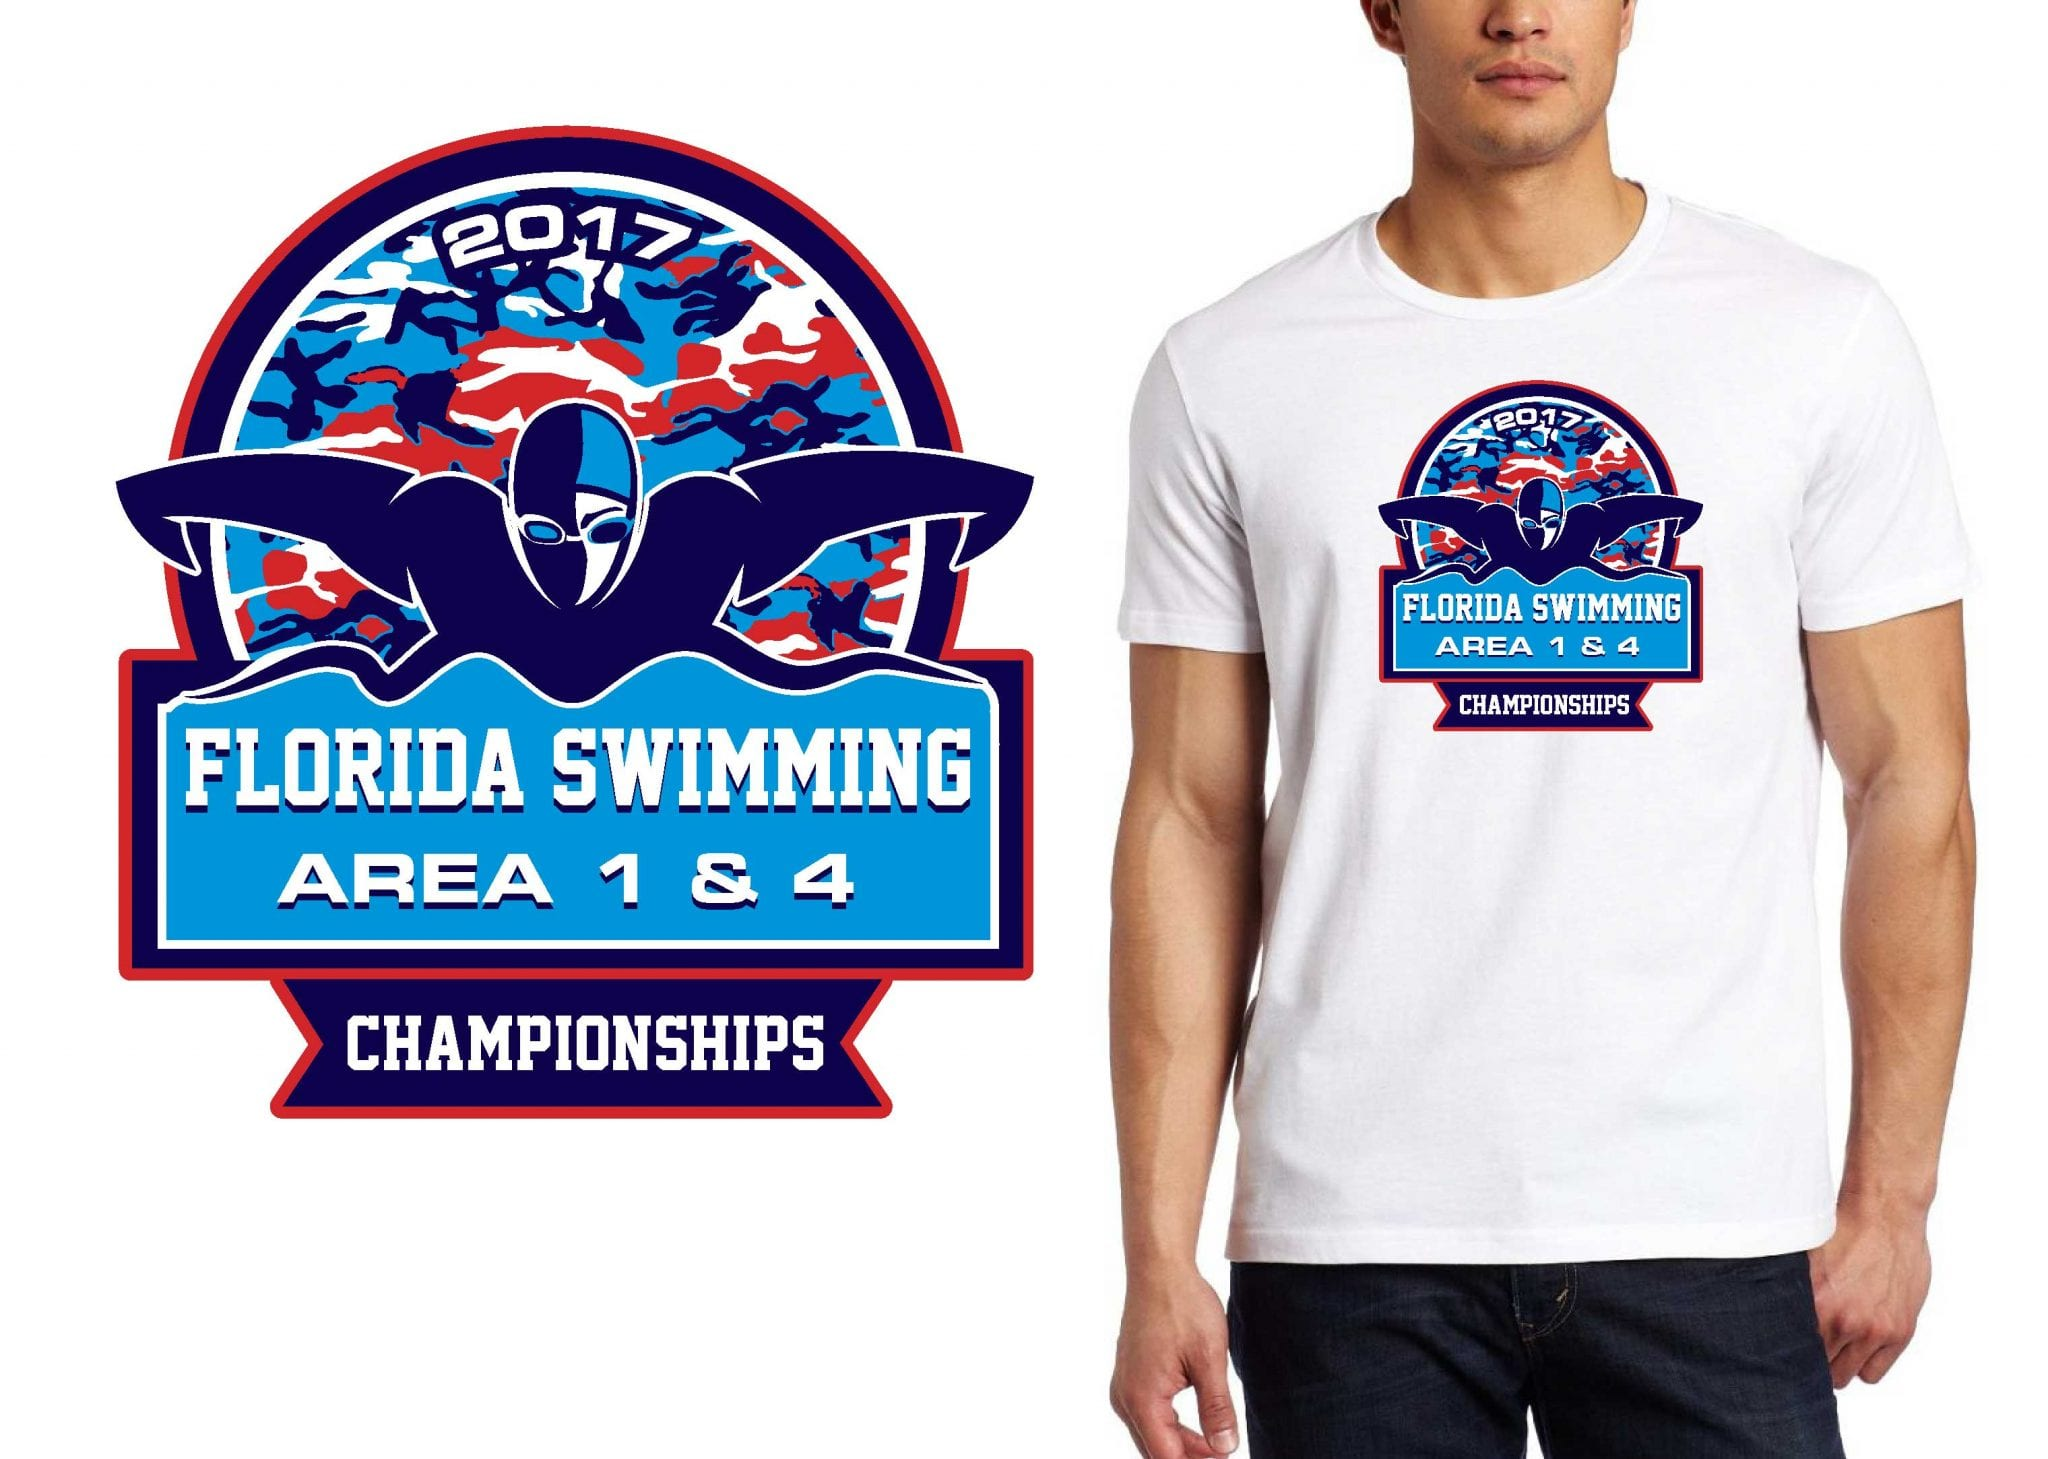 T SHIRT LOGO DESIGN Florida-Swimming-Area-1-4-Championships BY UrArtStudio